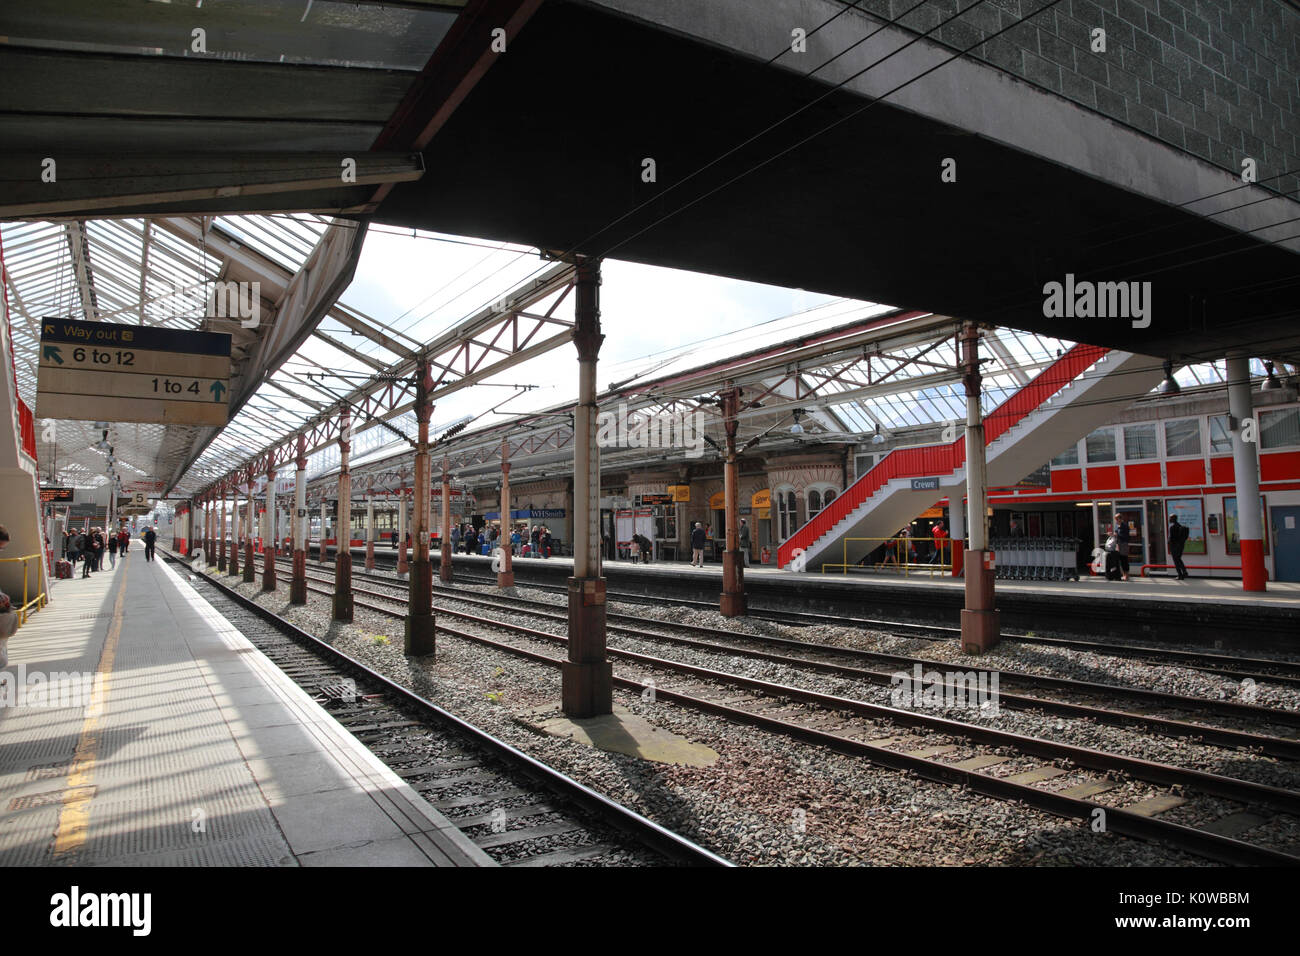 Platforms 5 and 6, Crewe Station, currently (2017) used for the Virgin West Coast trains from London to Glasgow - Stock Image